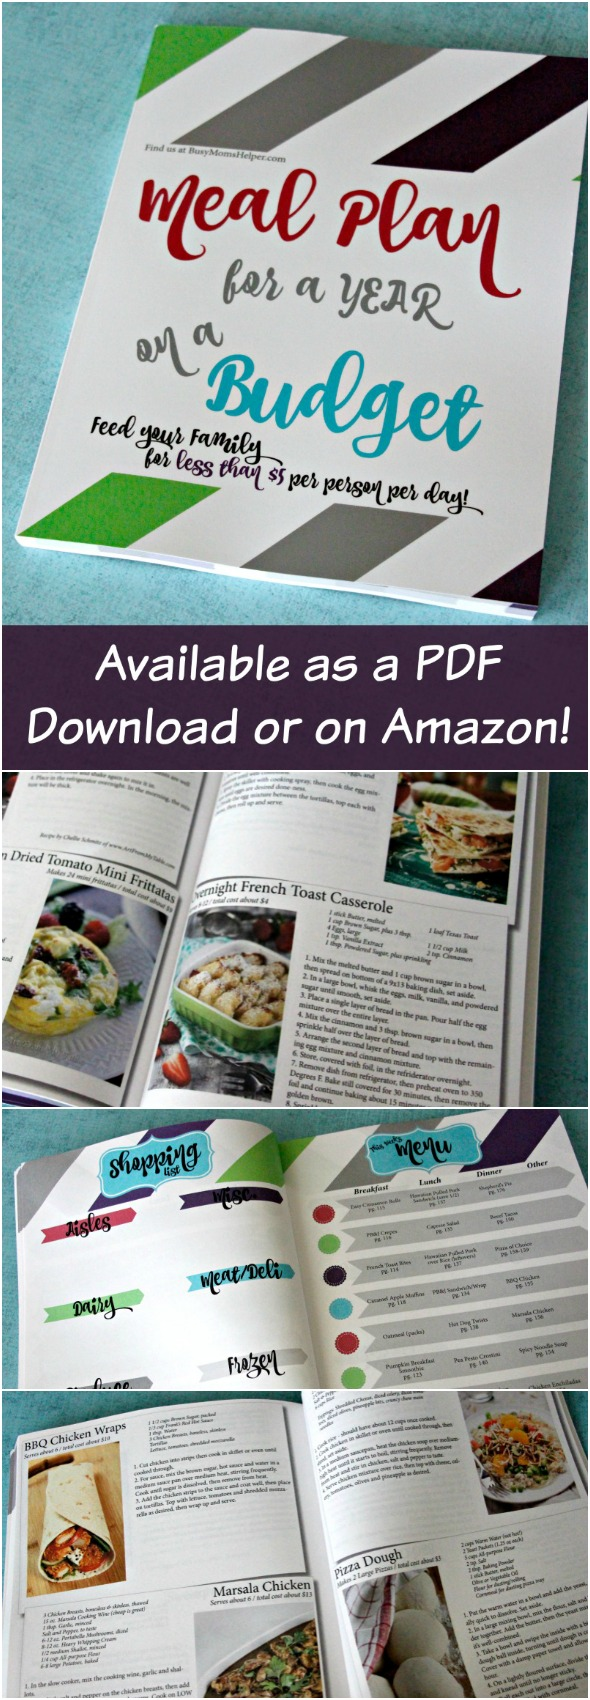 Meal Plan on a Budget: Feed Your Family for Less than $5 Per Person a Day / A full 52 Week Meal Plan #ad